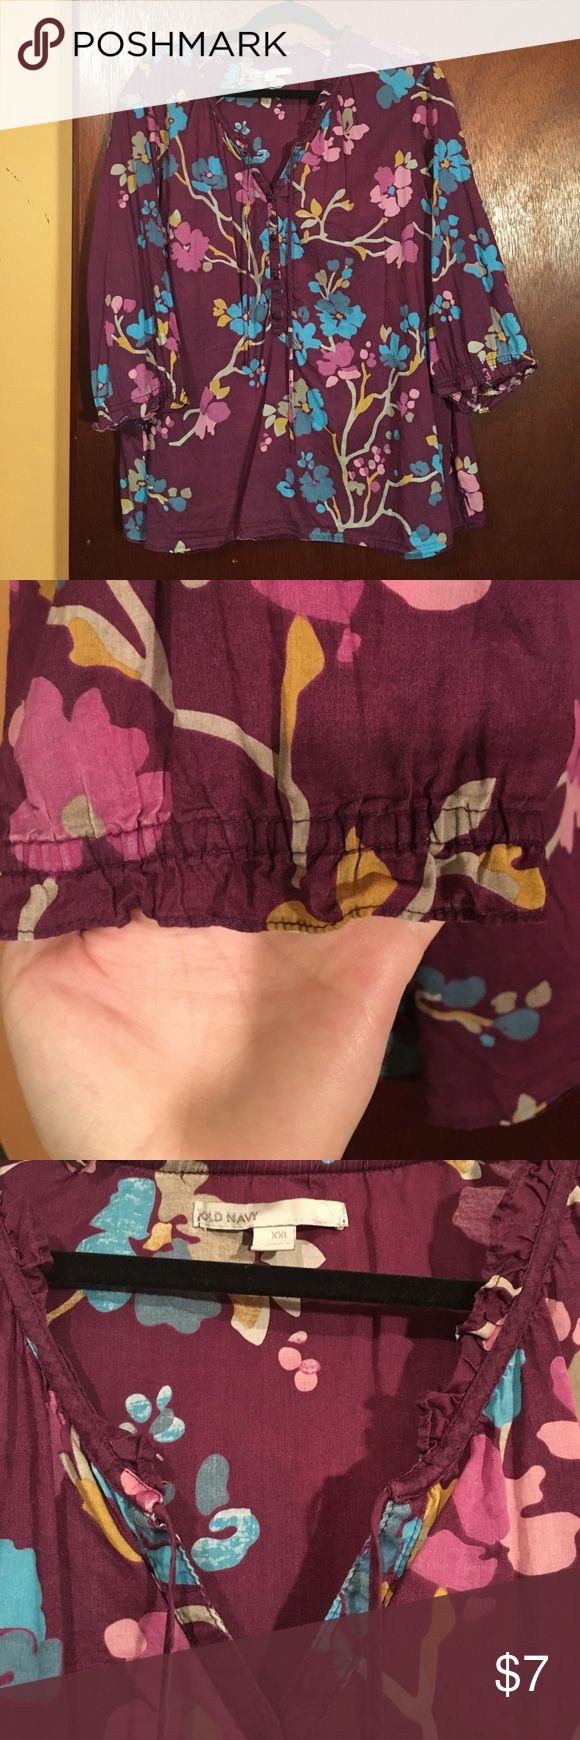 Old Navy XXL purple floral career top boho gypsy For sale is a pretty purple floral career top with partial putt on front, tie at the neck and little ruffles on the neck and sleeves. It is lightweight and I used to wear something underneath because I got cold easy but if you're hot natured you're in luck 😊. Sleeves are 3/4 and I'd say it's hip length but it's definitely not cropped. Meant to have a slightly faded look for boho chic. Give it s home! 🌸💗 Old Navy Tops